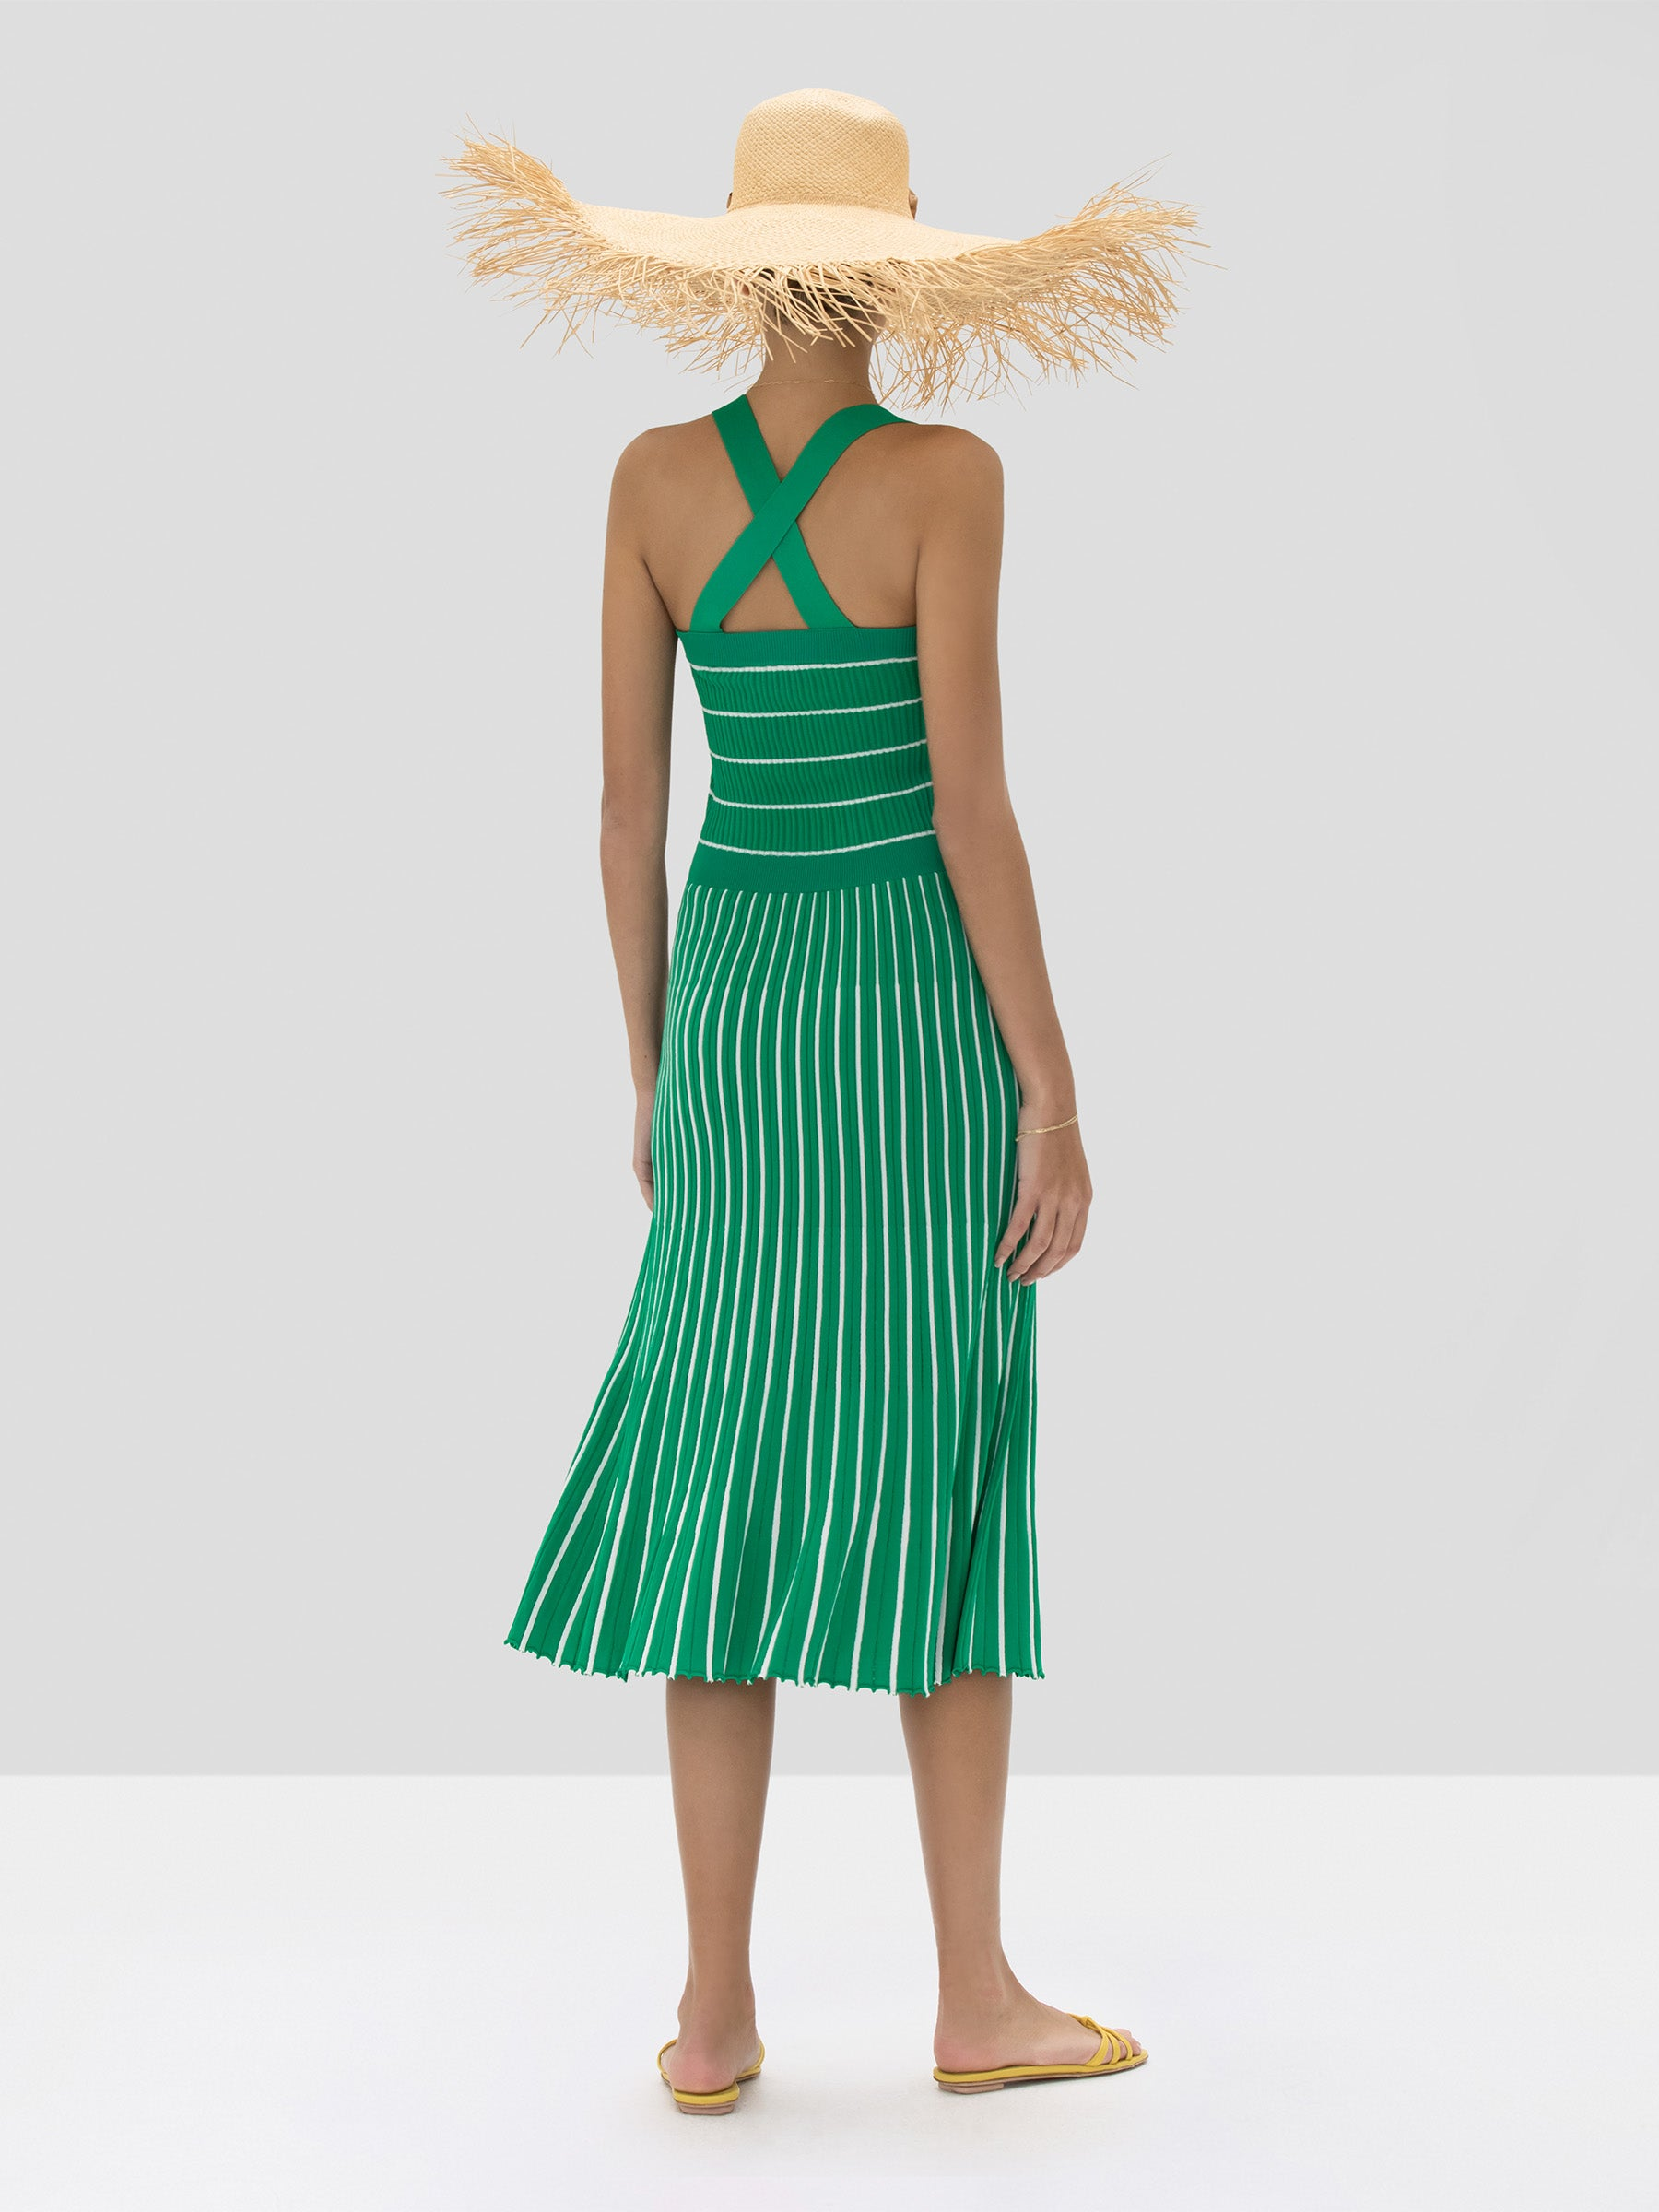 Alexis Bess Dress in Green and White Stripes from the Spring Summer 2020 Collection - Rear View